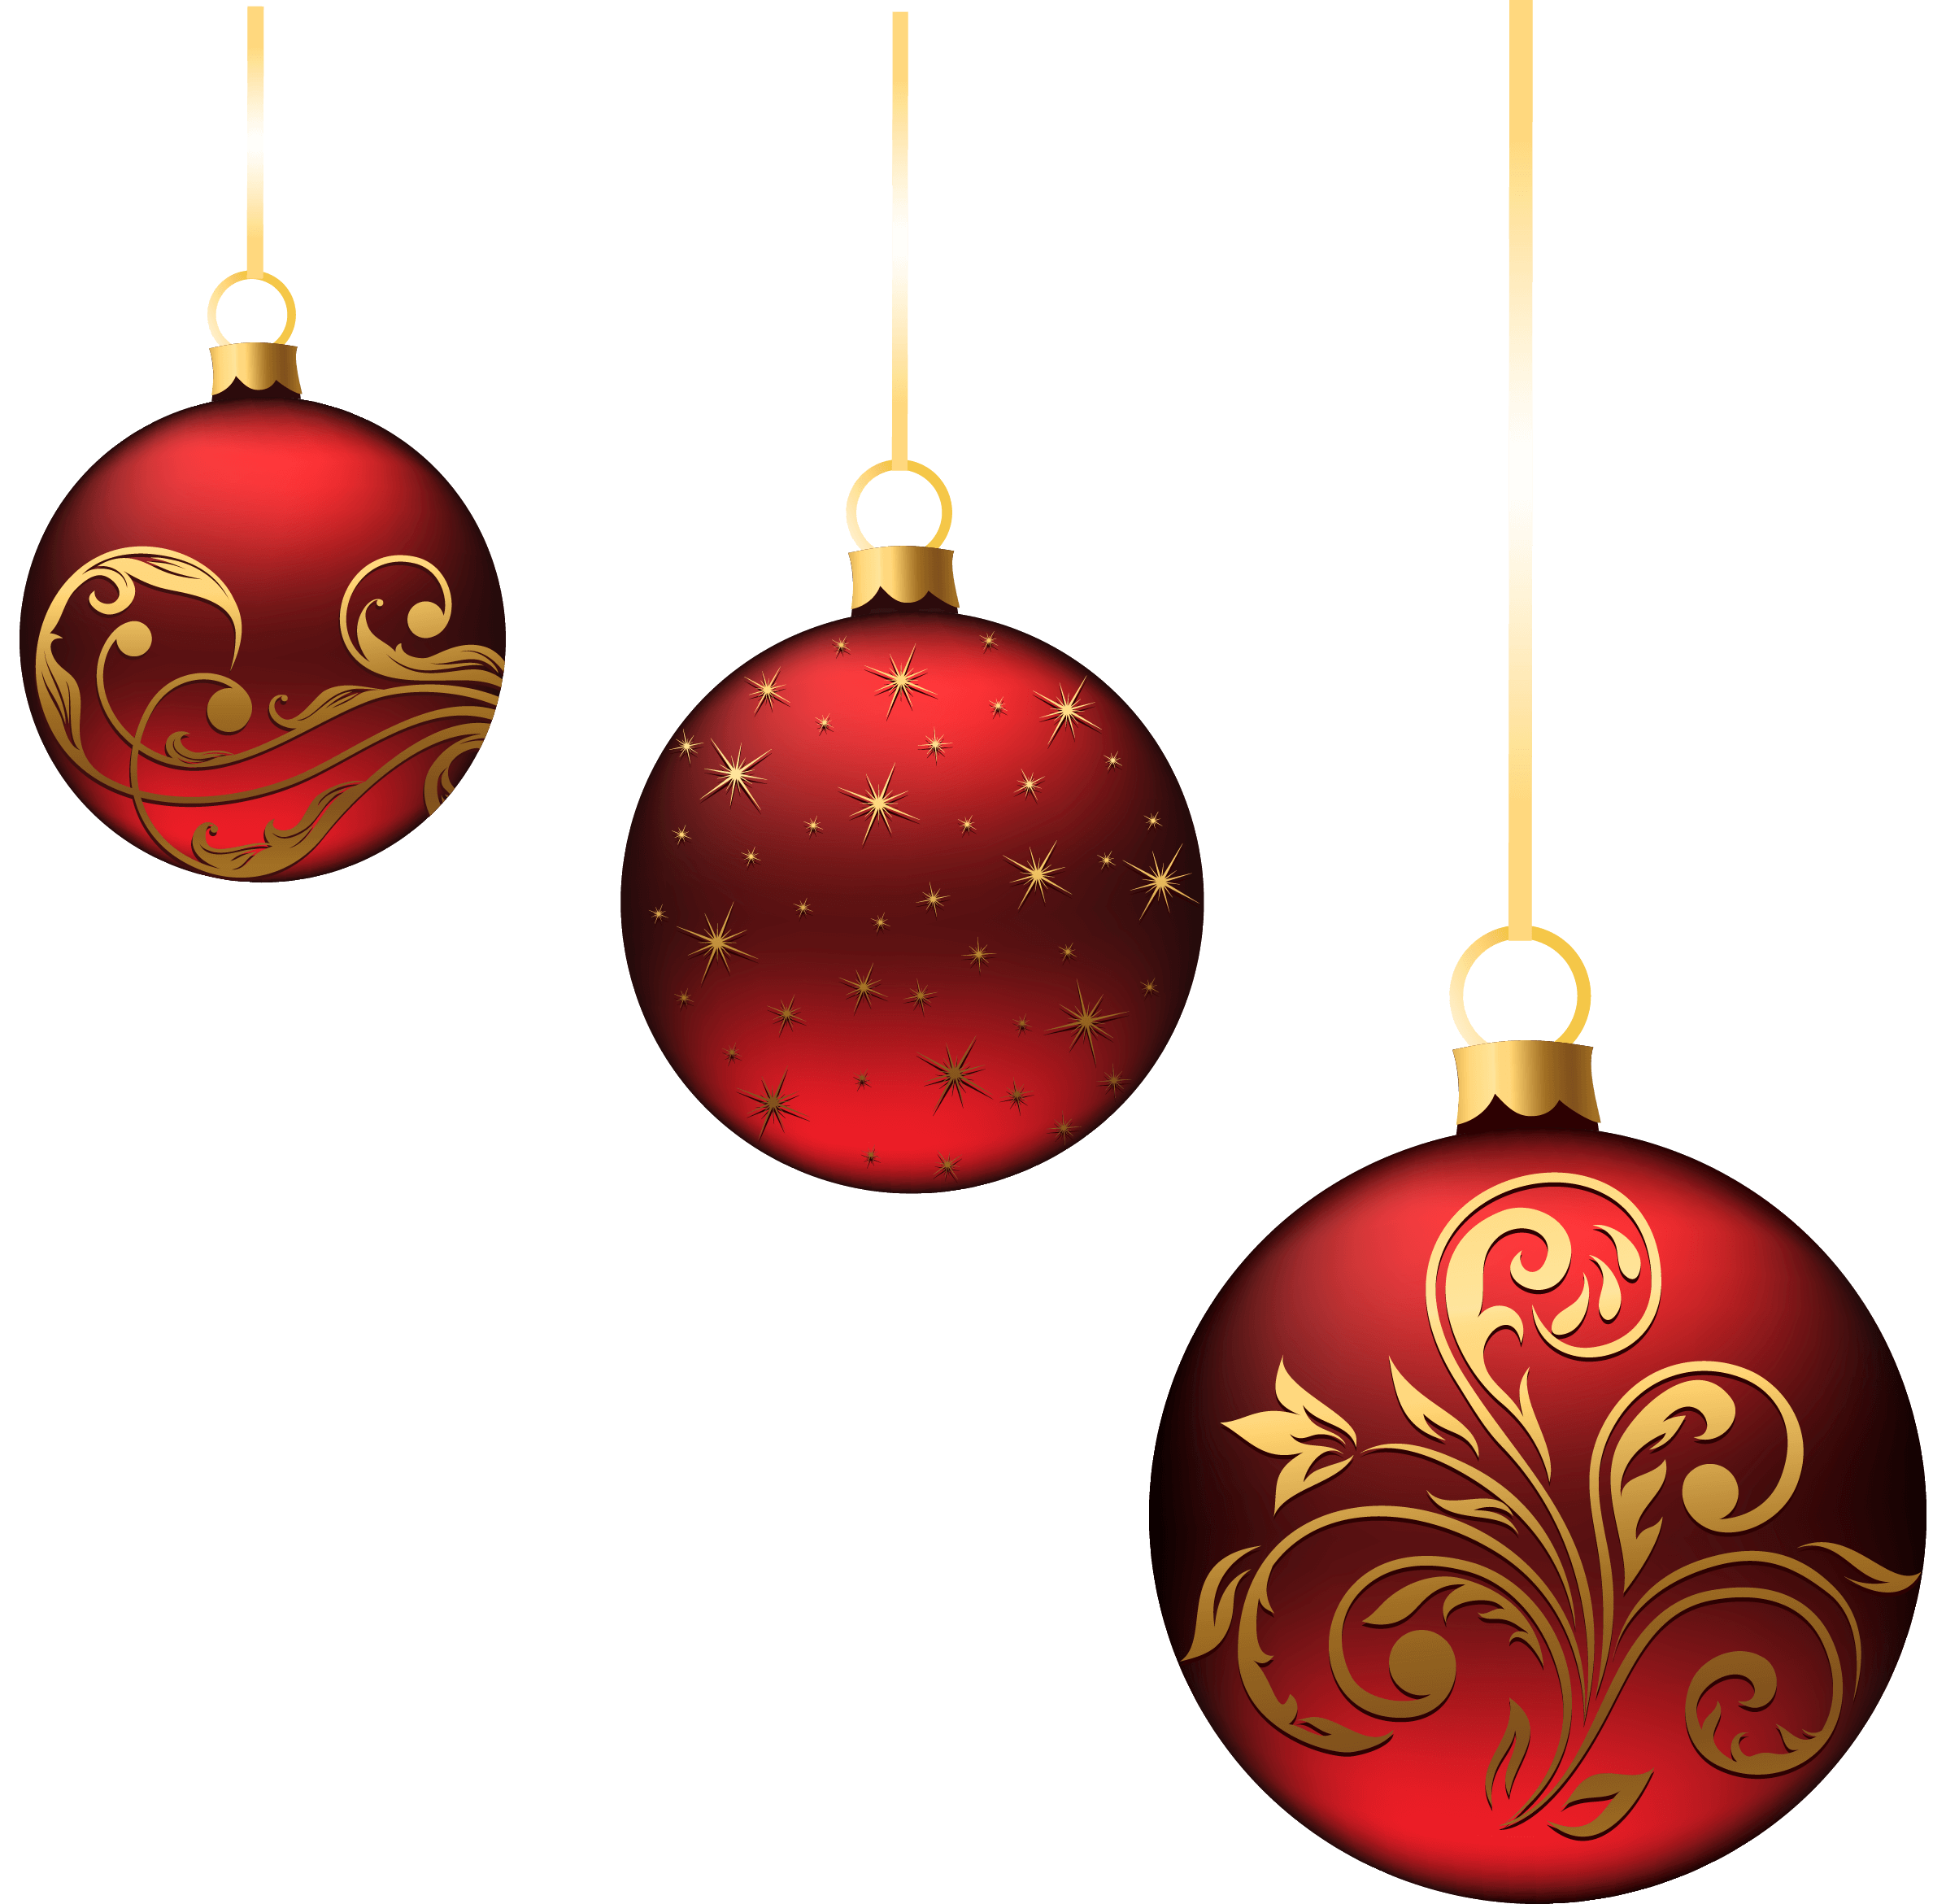 Christmas ball png. Transparent red